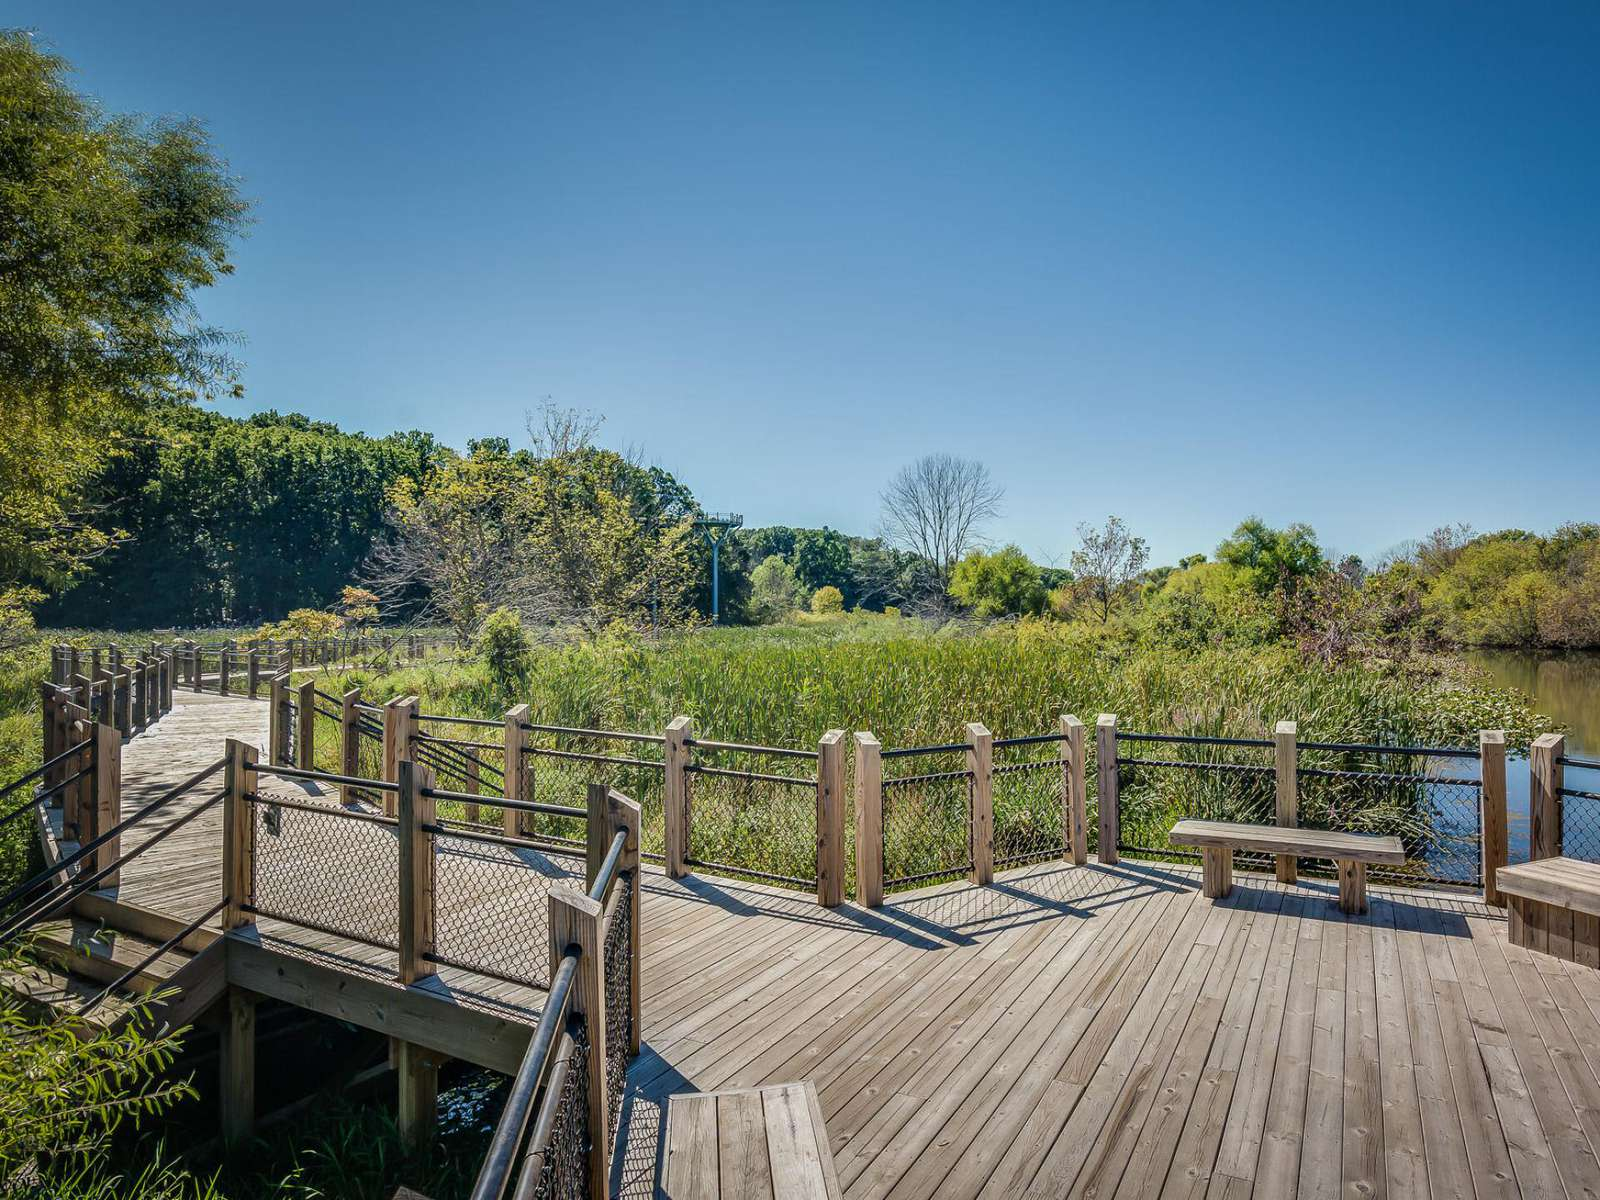 Galien River Park Boardwalk - New Buffalo